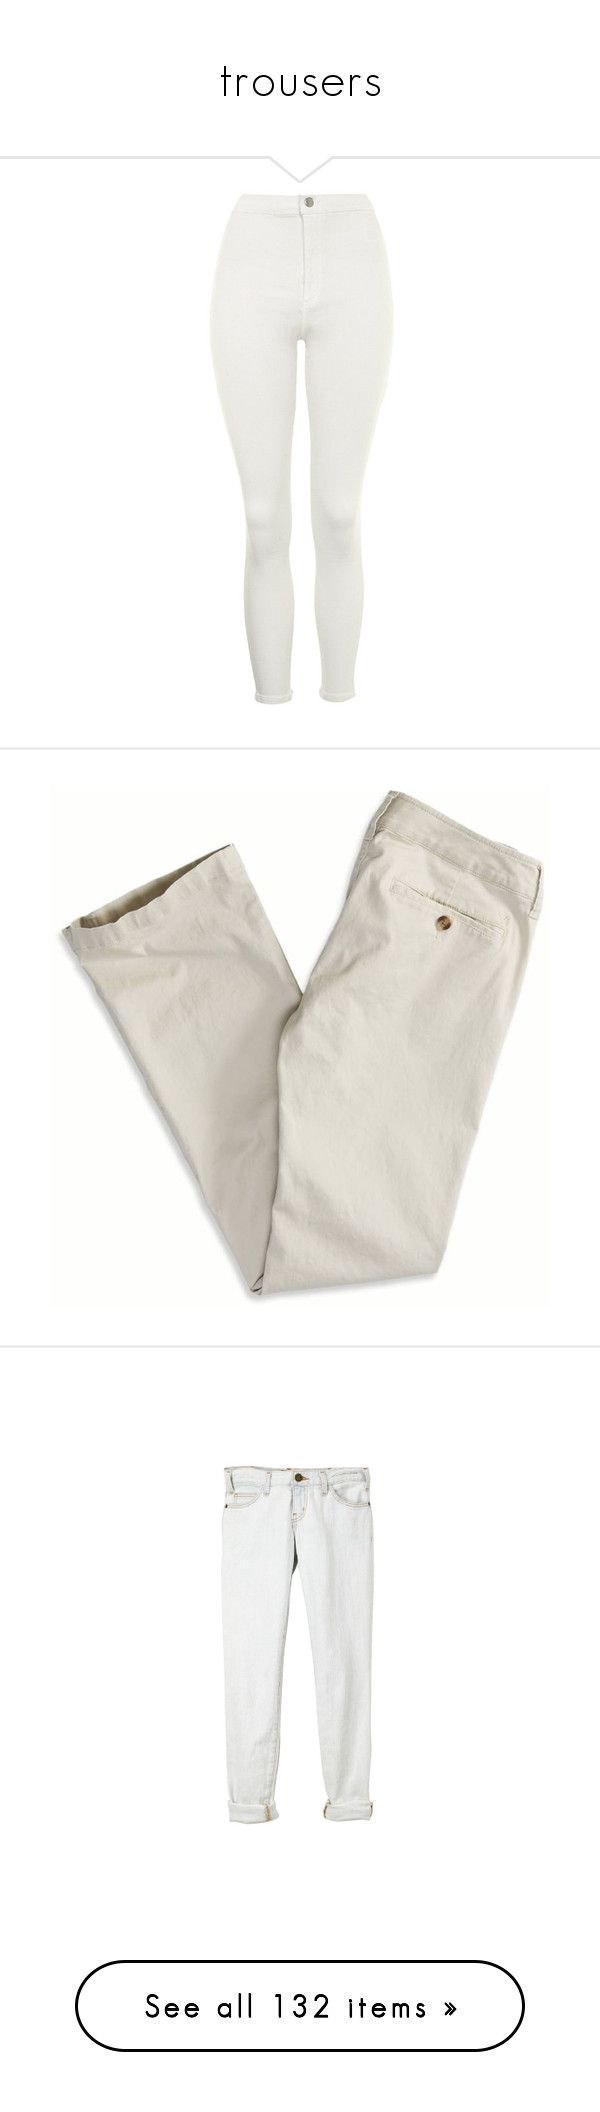 """""""trousers"""" by ouchm4rvel ❤ liked on Polyvore featuring jeans, petite skinny jeans, high waisted jeans, white jeans, denim skinny jeans, skinny jeans, pants, bottoms, slim fit trousers and slim pants"""